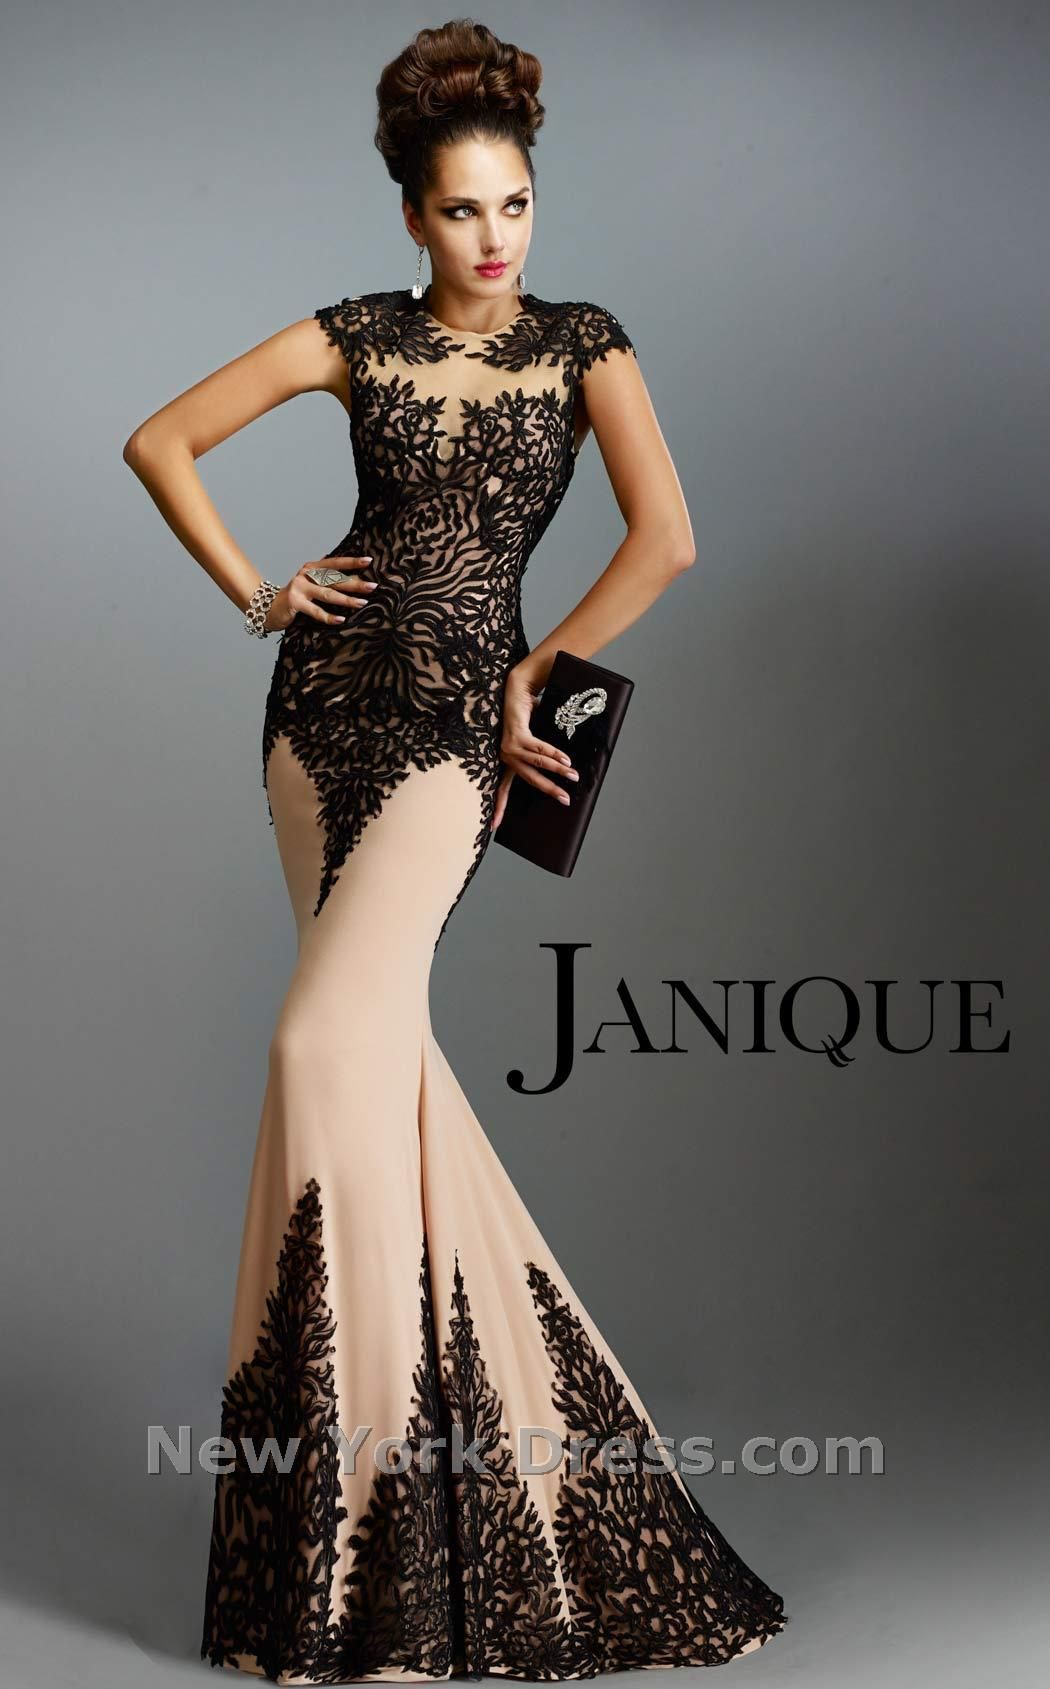 Have a fabulous night wearing this janique k evening gown this